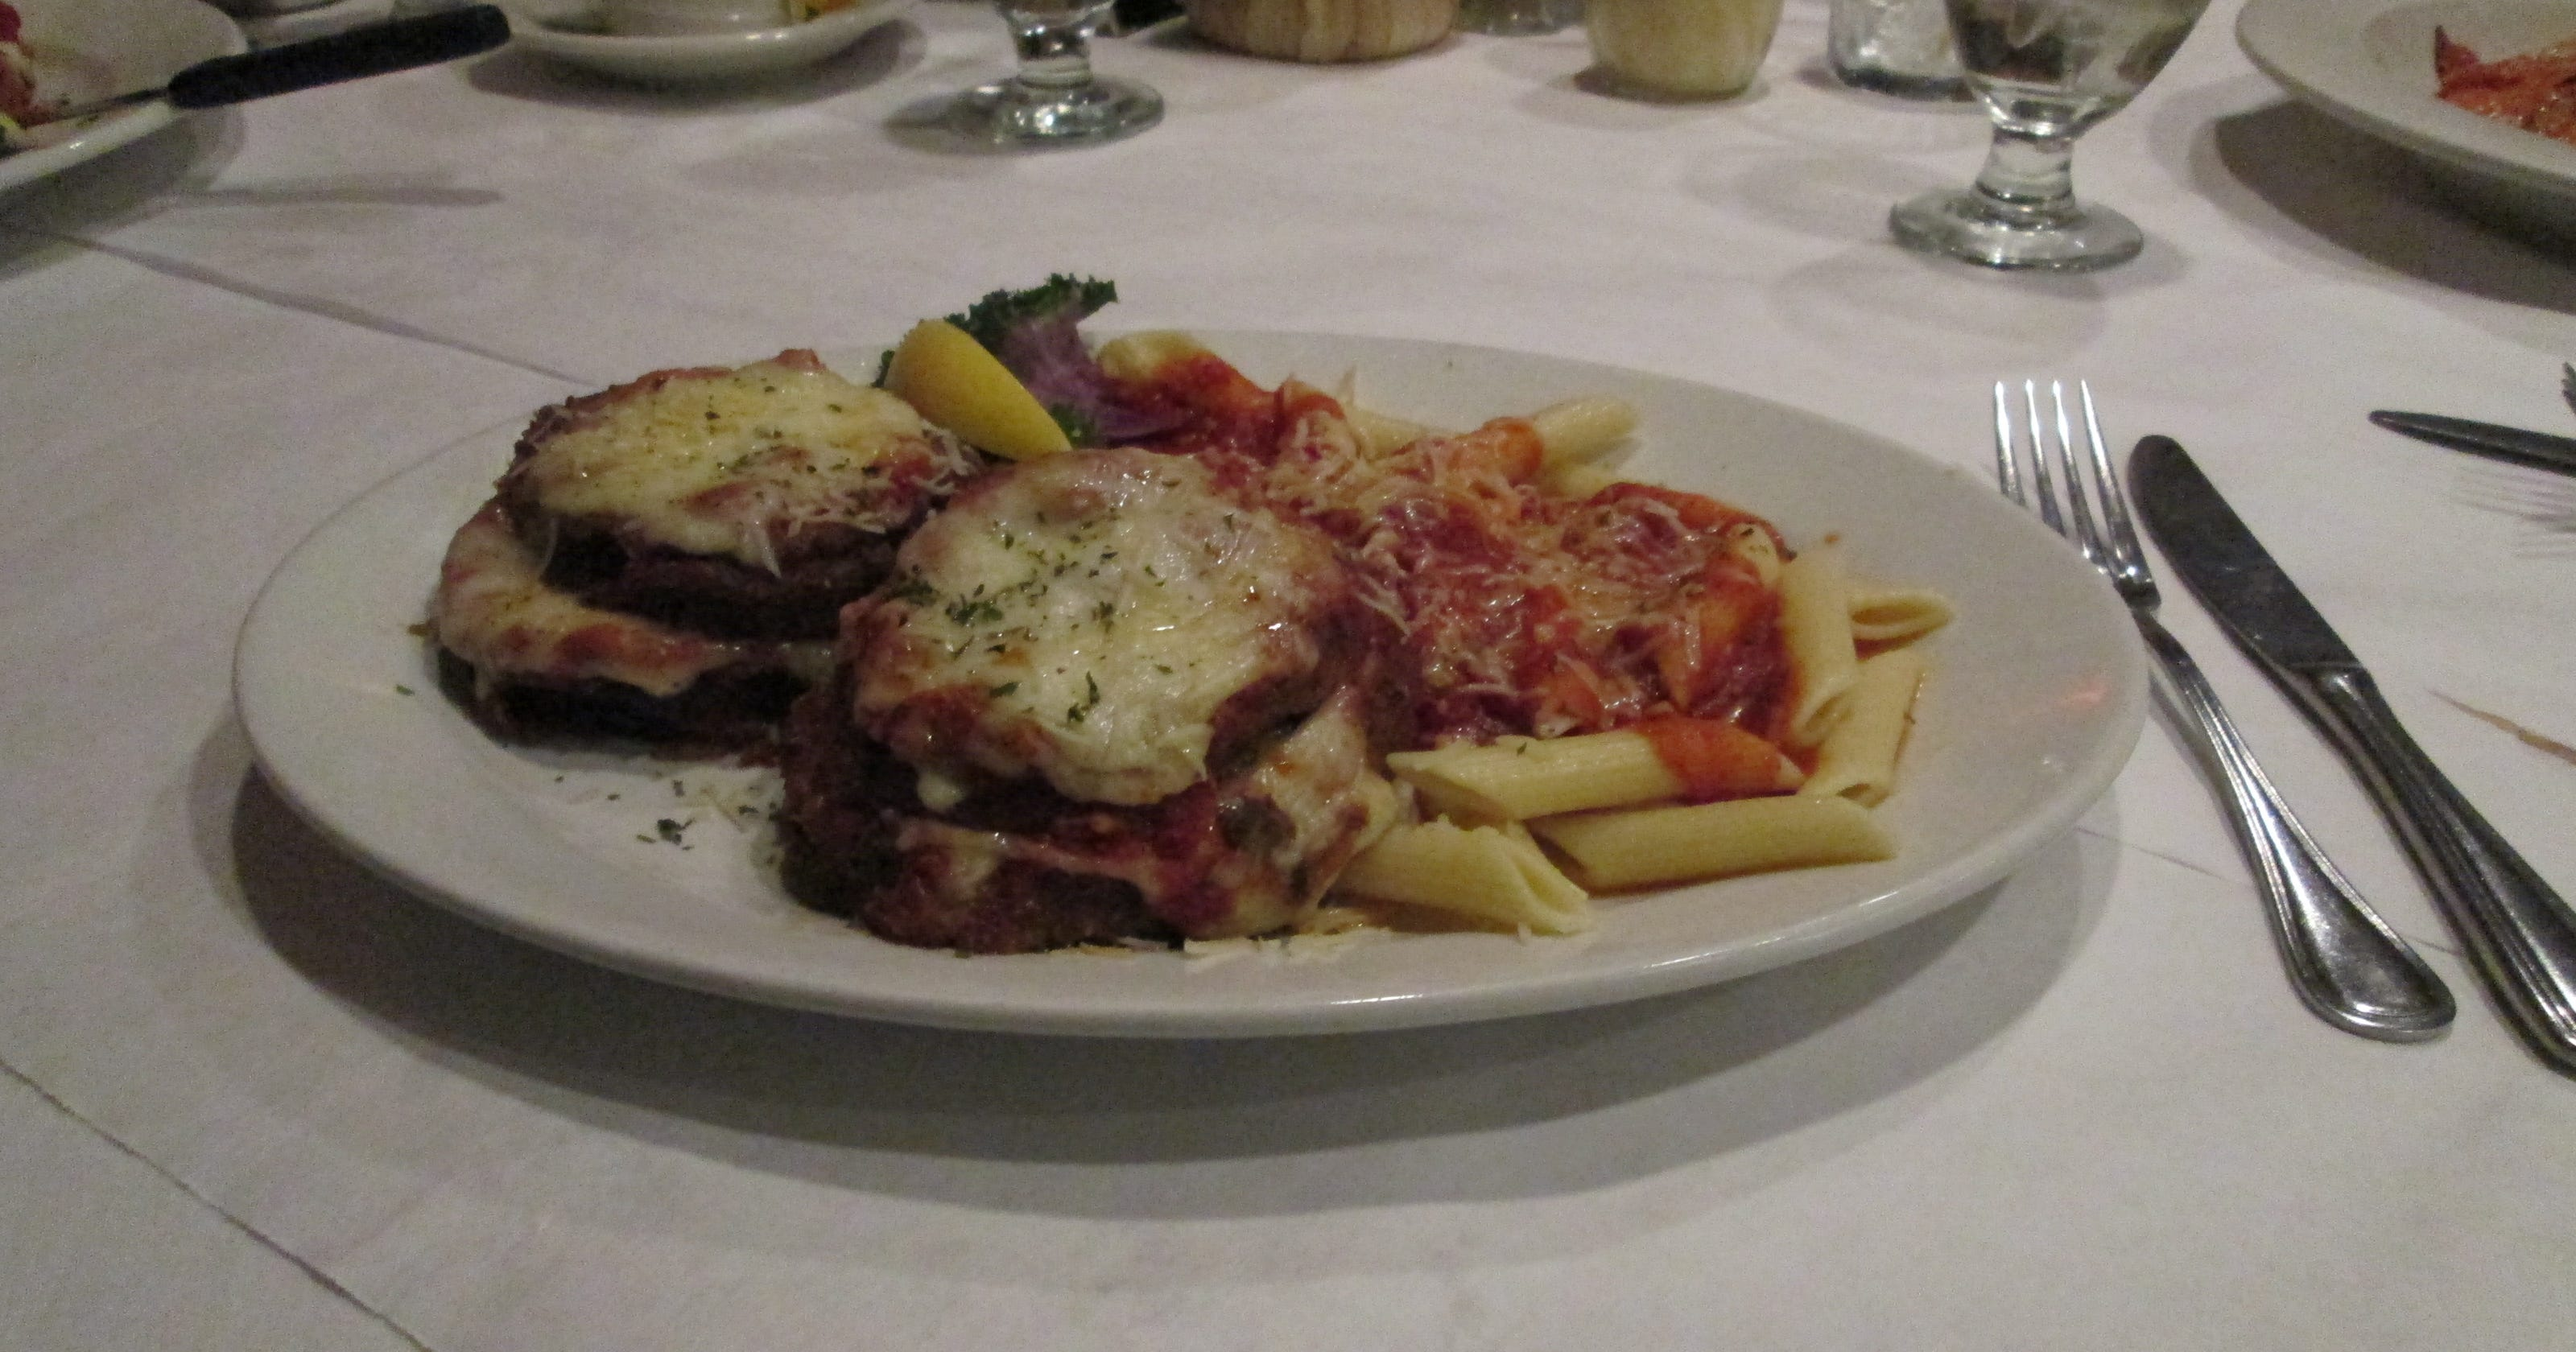 Messina's offers authentic Italian